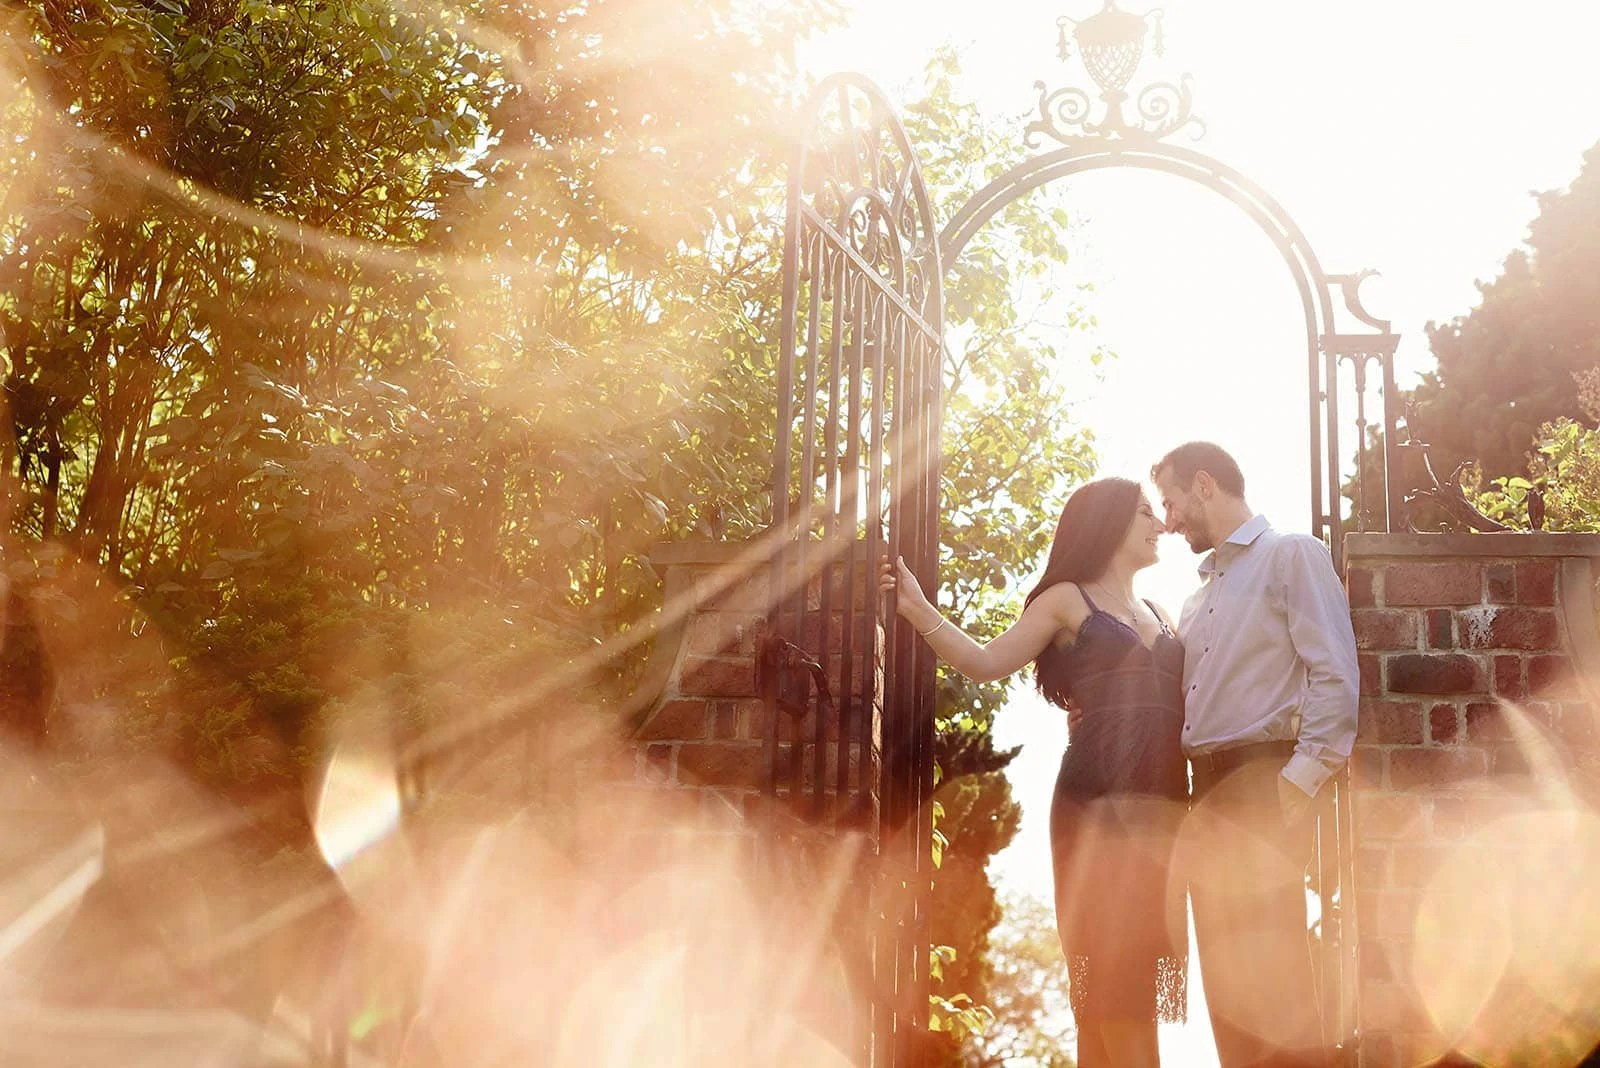 Engagement session suggestions for couples